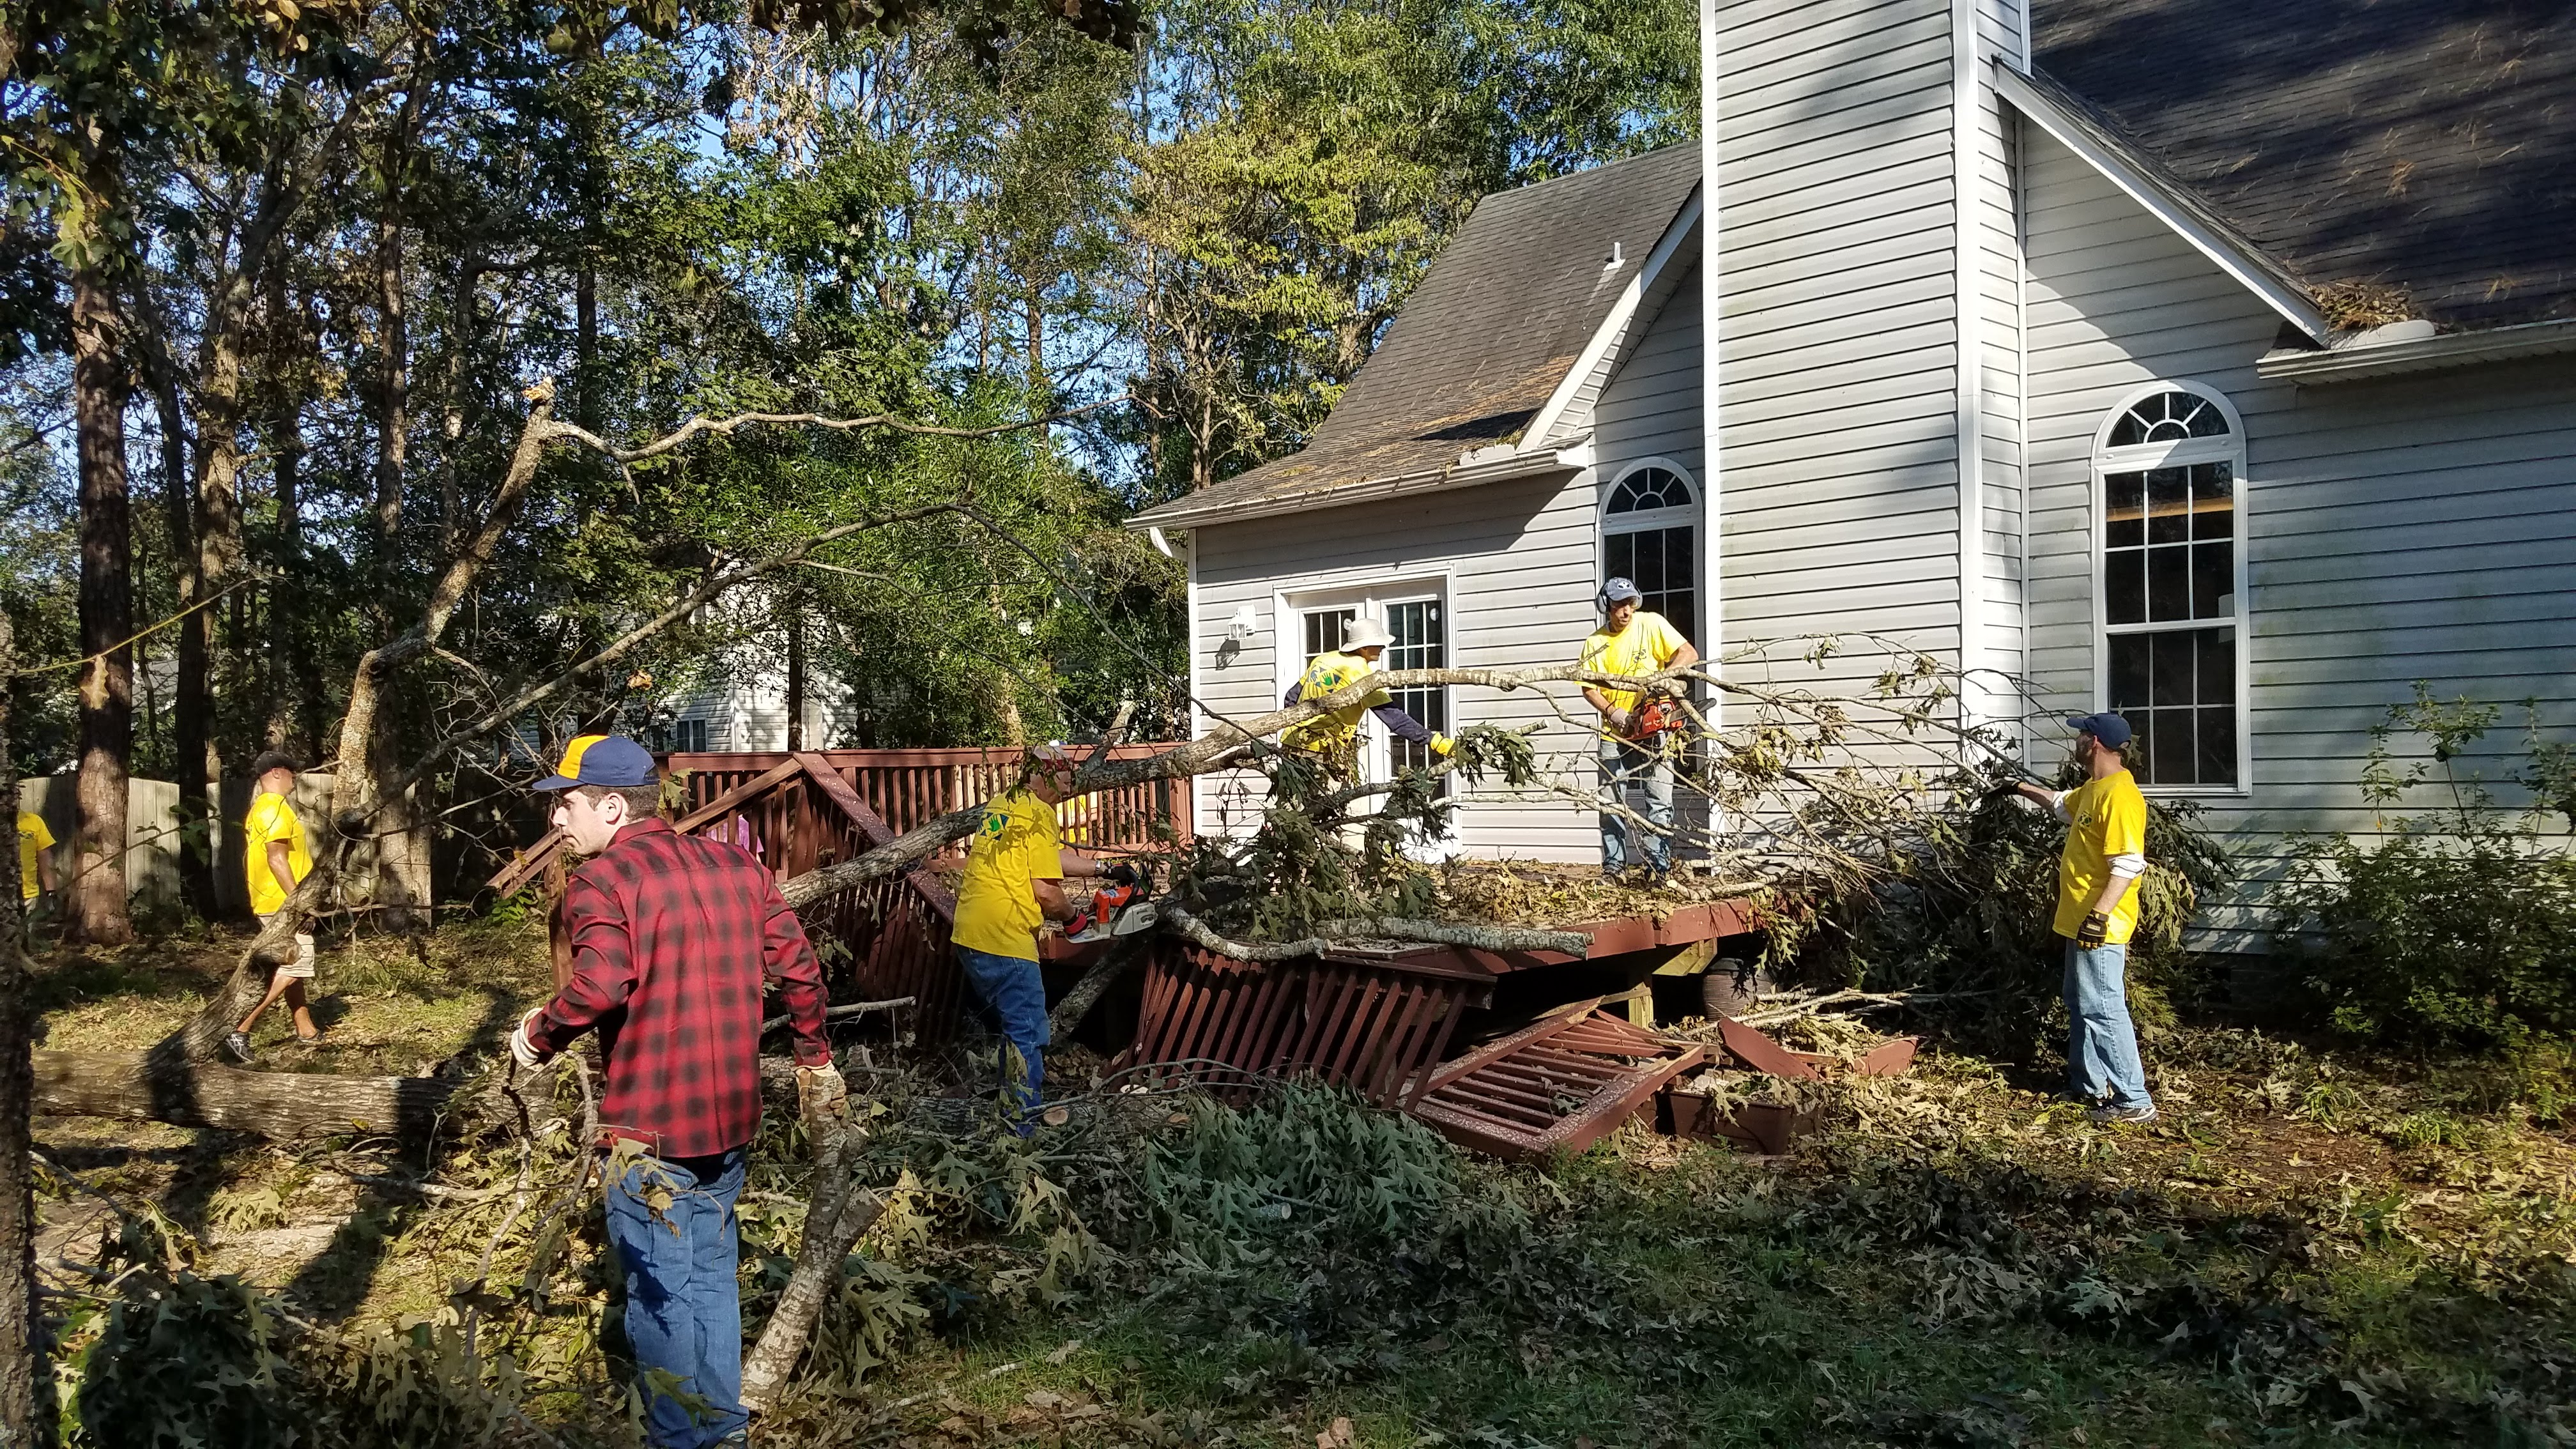 Latter-day Saints clear out debris outside home in Wilmington, North Carolina, following Hurricane Florence.